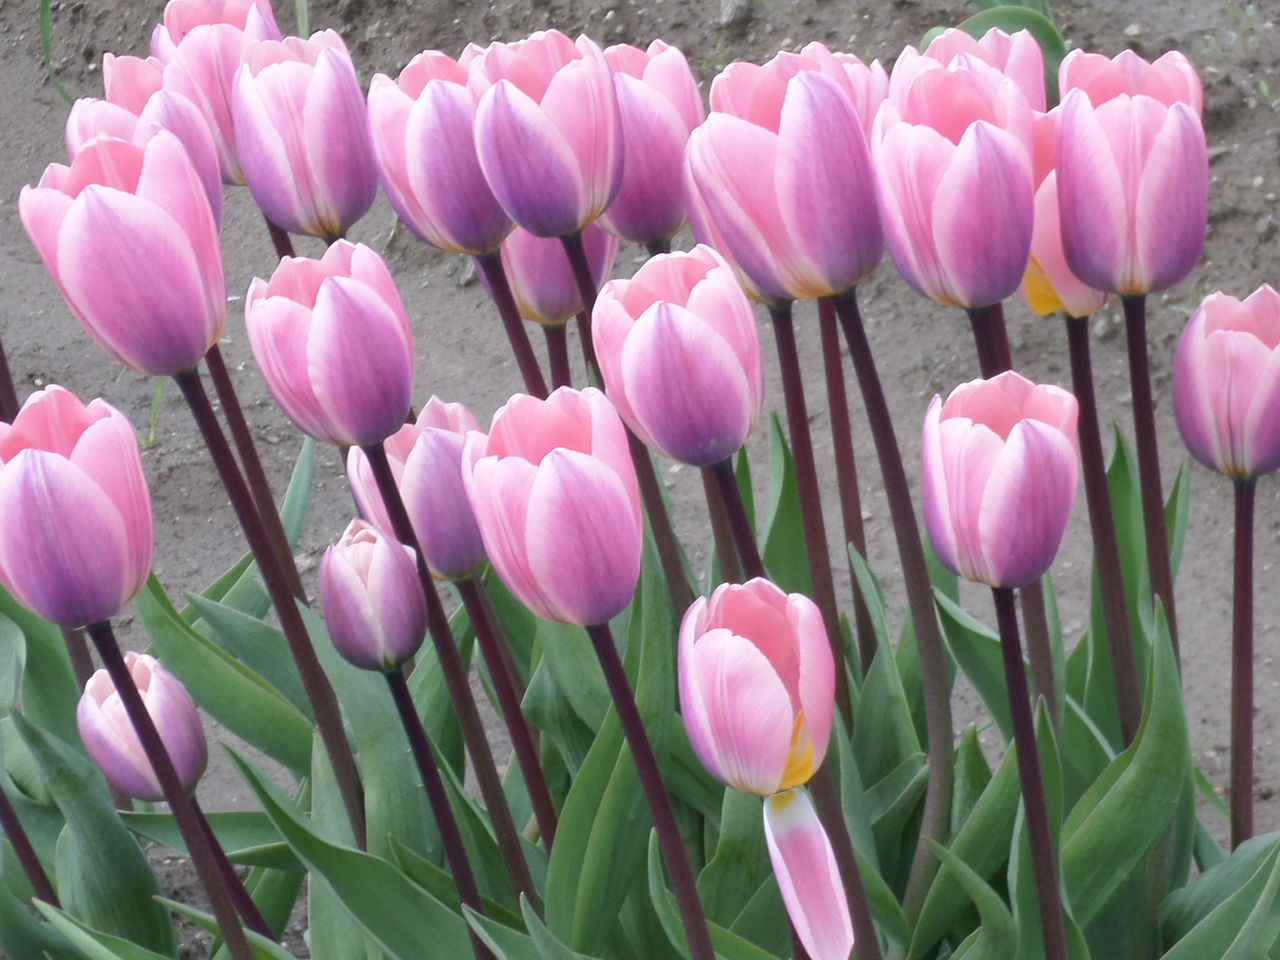 Tulips, no filters. Pink Color Flower Blooming Freshness Plant PNWonderland Tulips Tulip Tulip Flowers Tulipseason Tulips In The Springtime Tulips Time Pink Pink Tulips Pink Flower Pink Flowers Pink And Violet Violet Violet Flowers Violet Tulip Pink And Green Violet And Green Nofilter No Filters  No Filters Or Effects